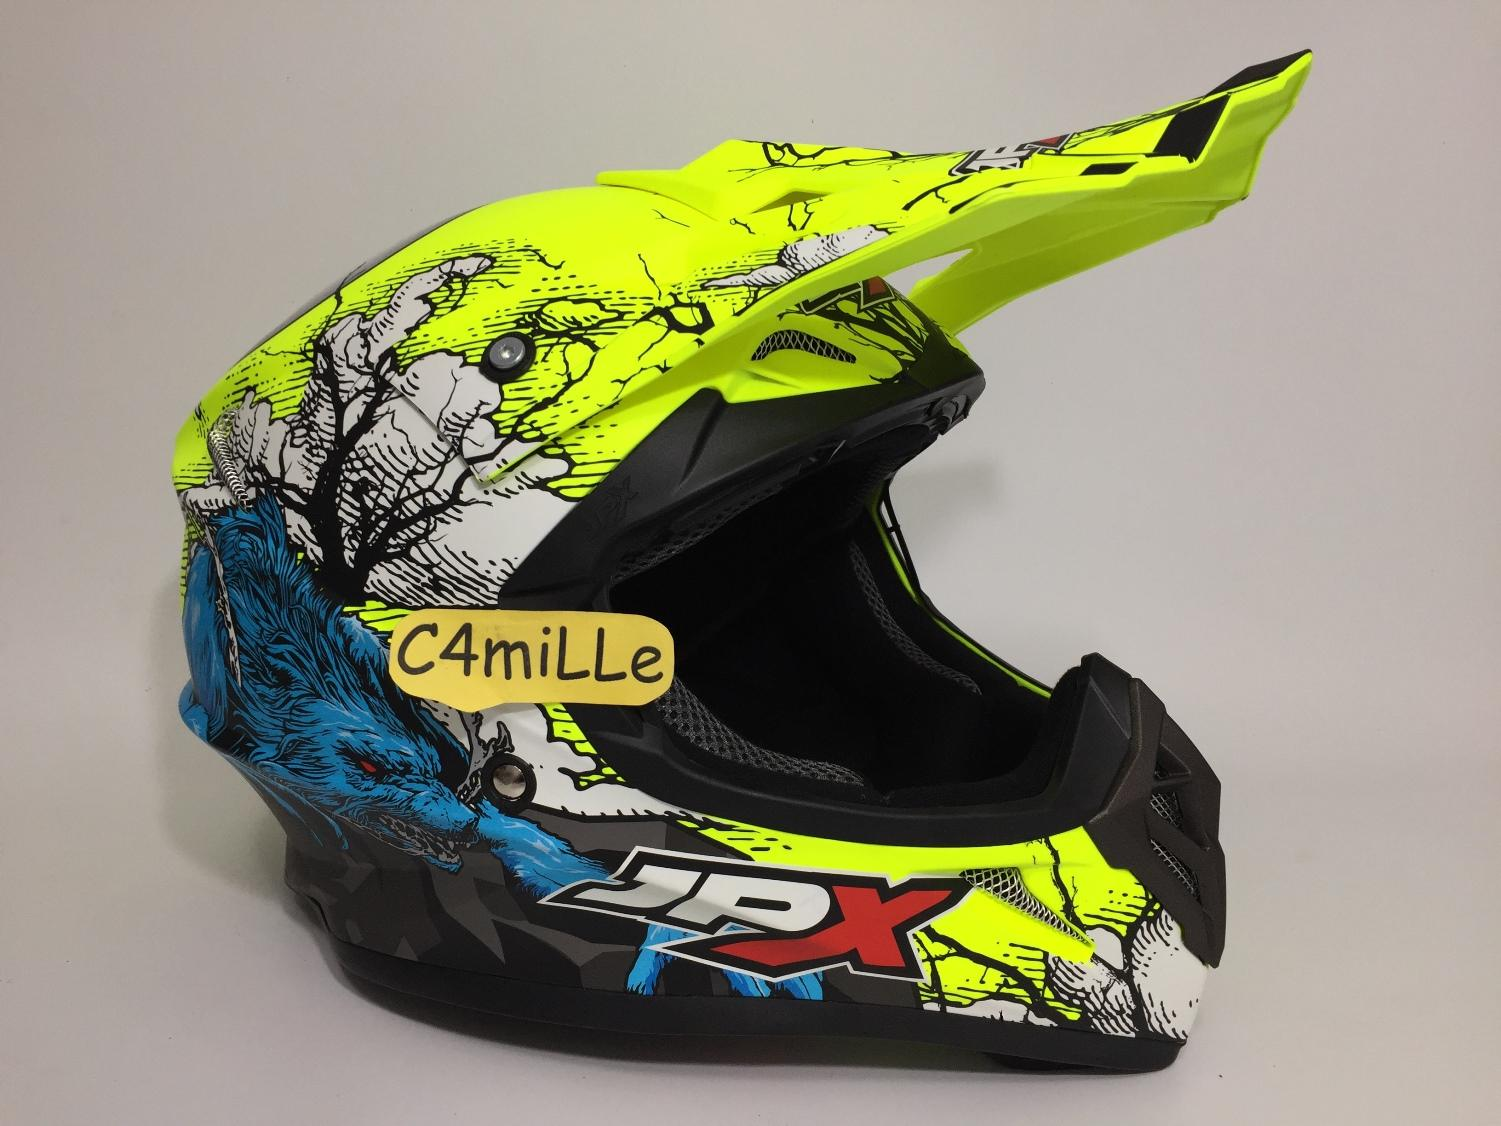 HELM JPX CROSS X14 YELLOW FLUO DOFF TRAIL SUPER CROSS